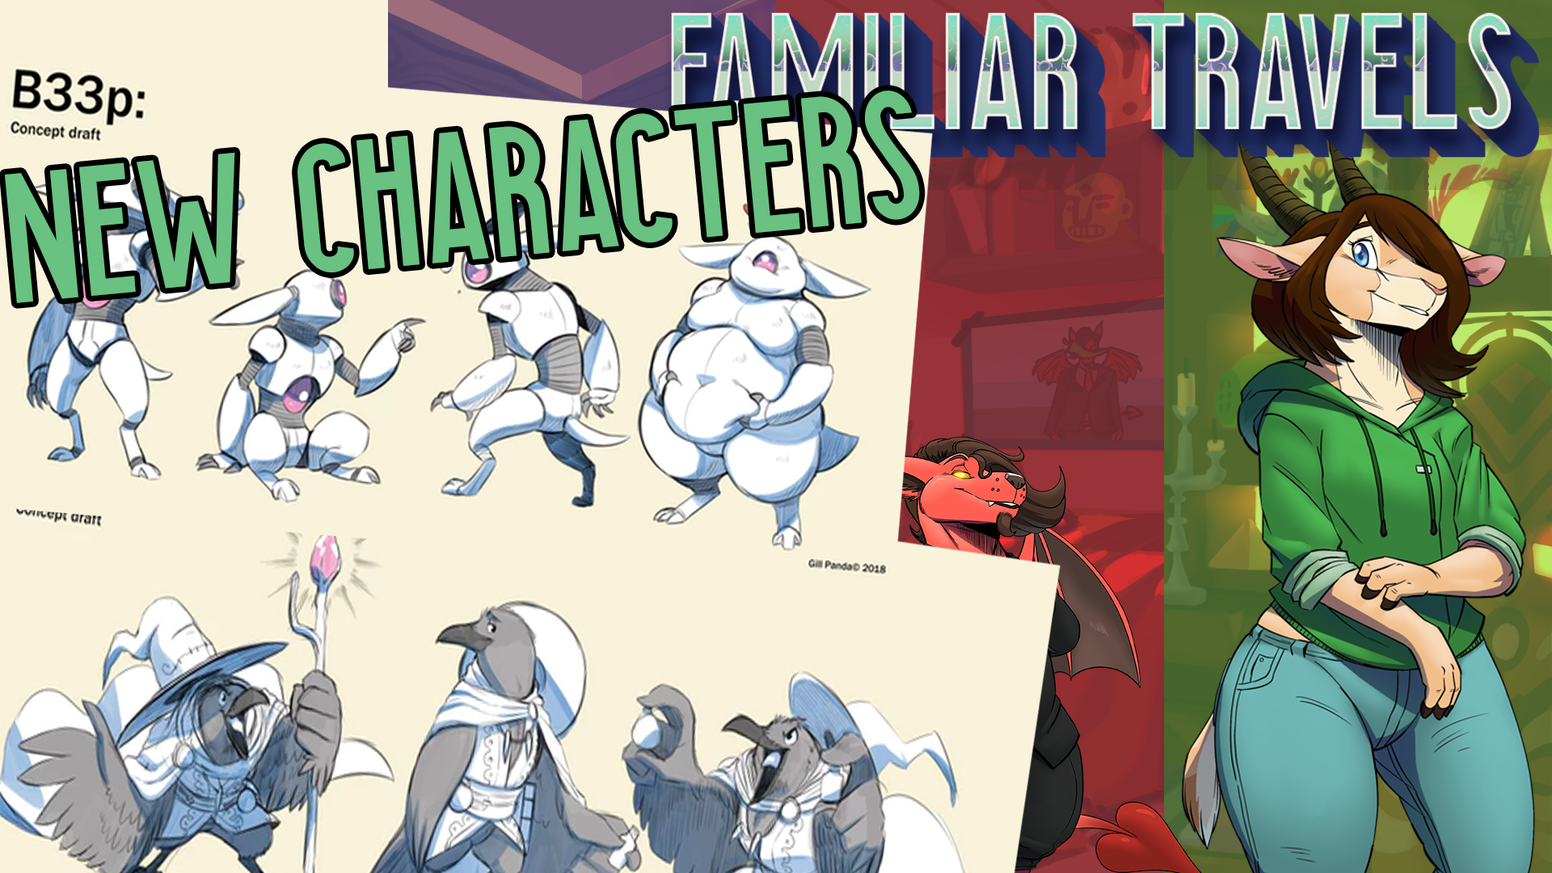 Familiar Travels is a graphic adventure amalgamation of classic point and  click adventures and modern visual